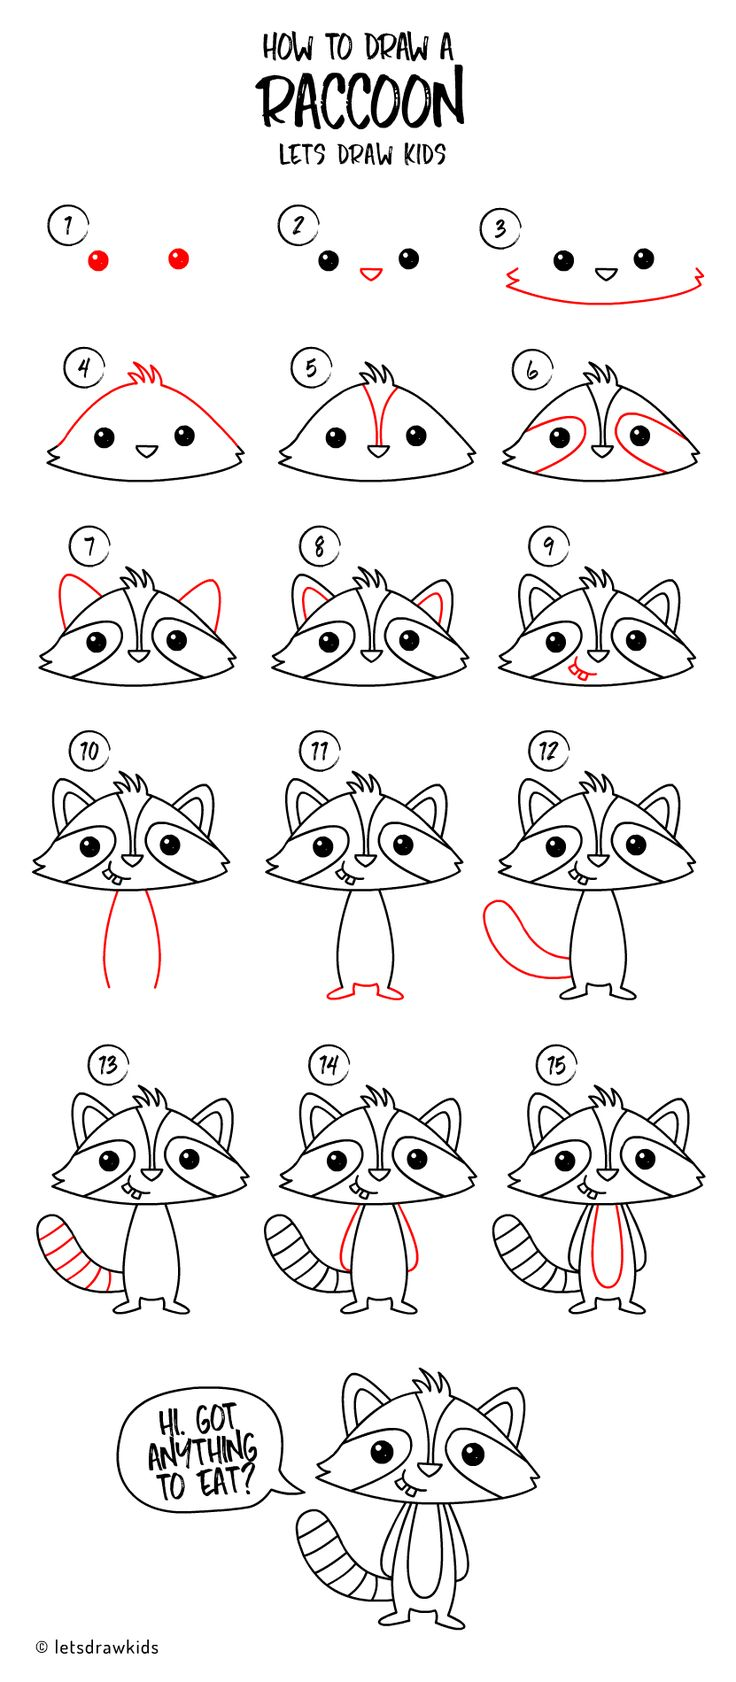 How To Draw A Raccoon Easy Drawing, Step By Step, Perfect For Kids